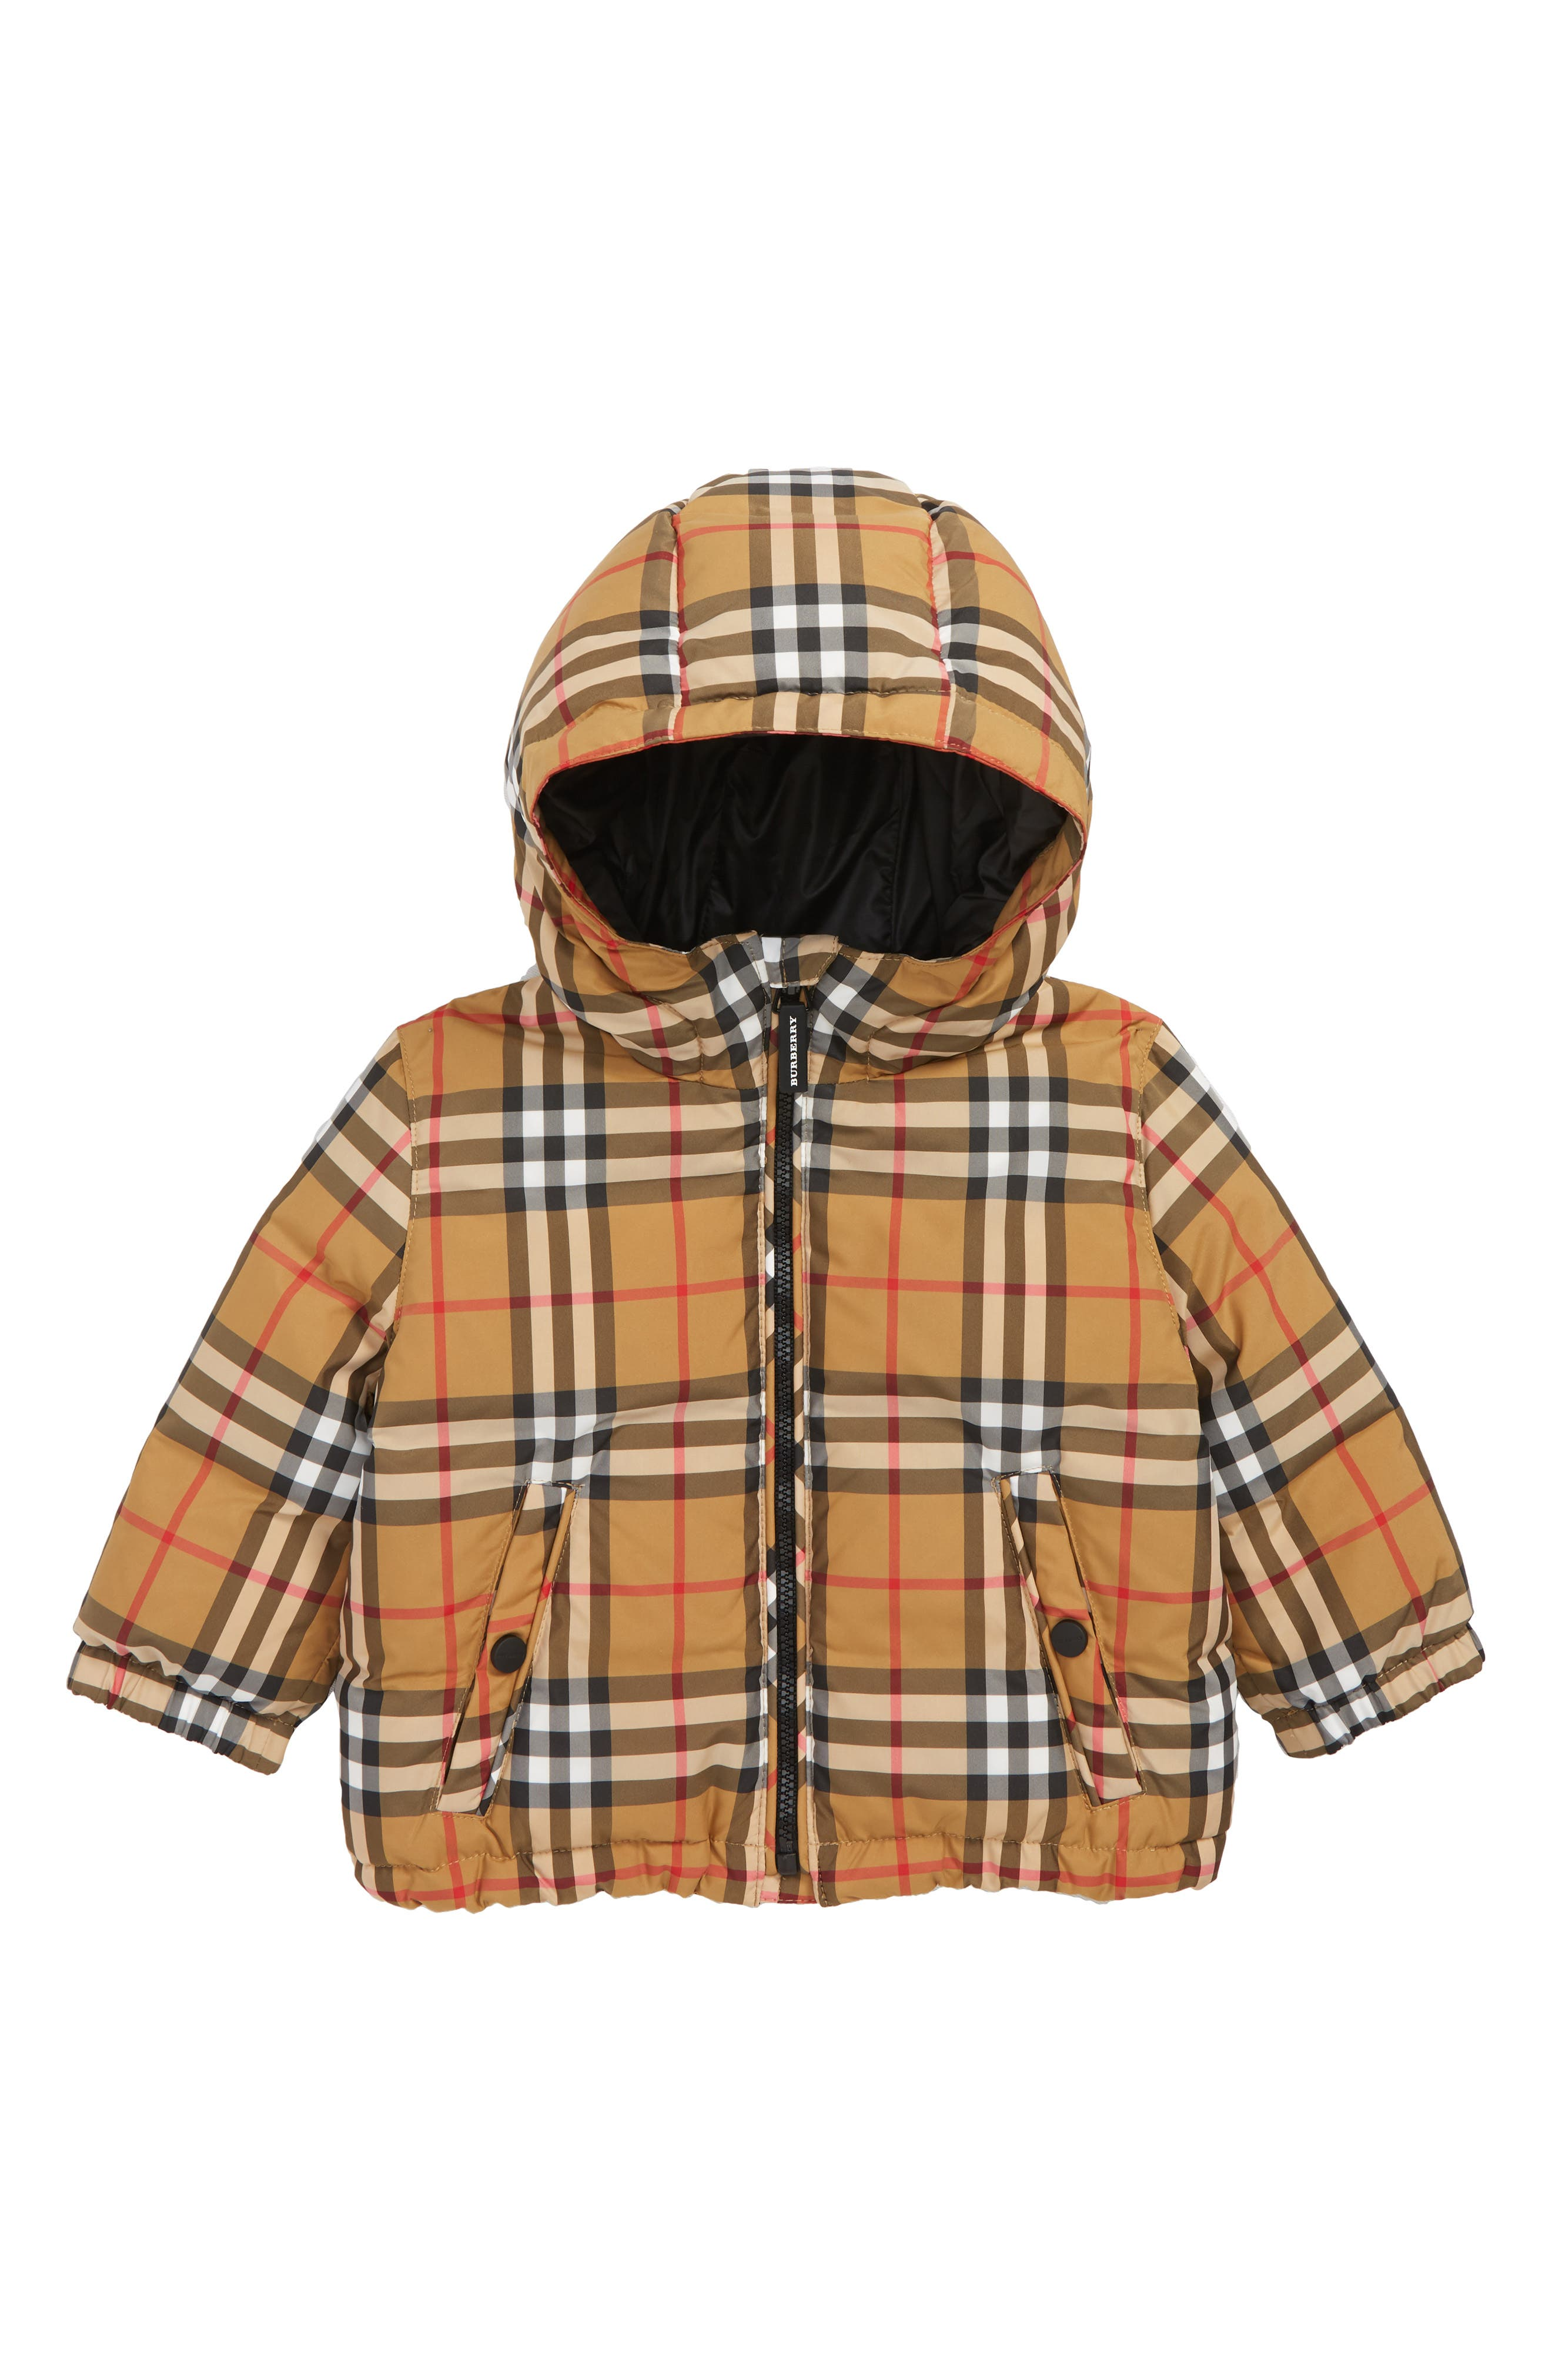 BURBERRY, Check Hooded Down Coat, Main thumbnail 1, color, ANTIQUE YELLW IP CHK